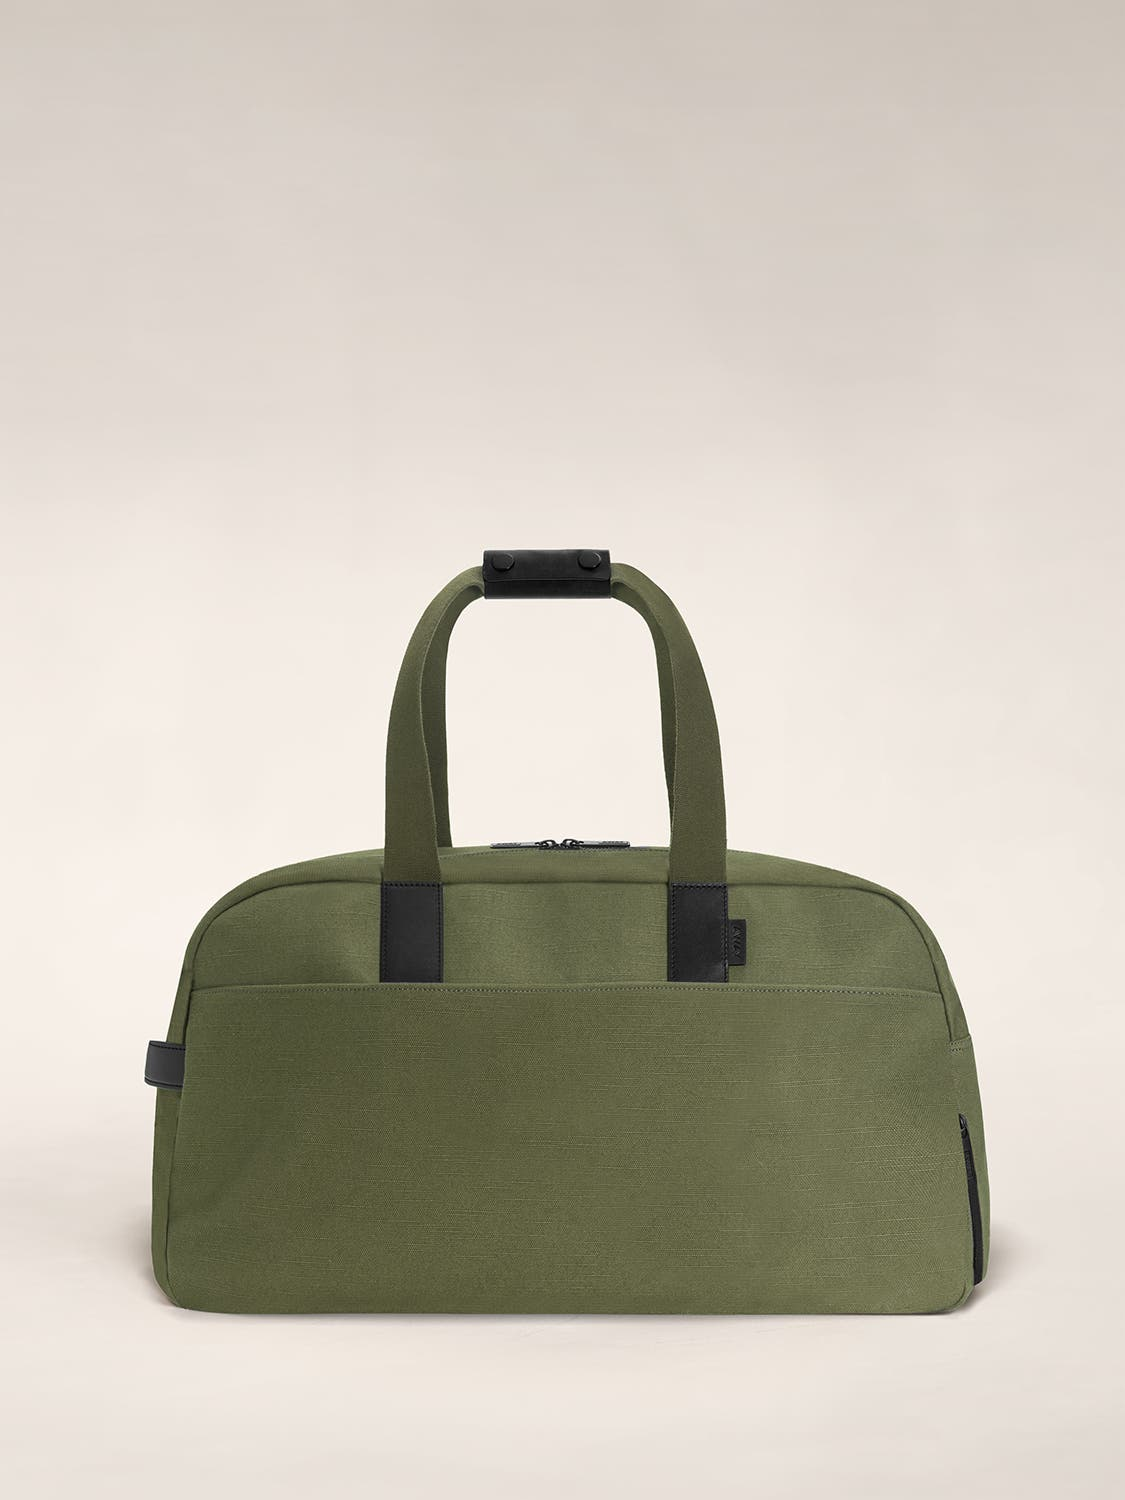 A canvas duffle bag in the color olive with black leather trim.